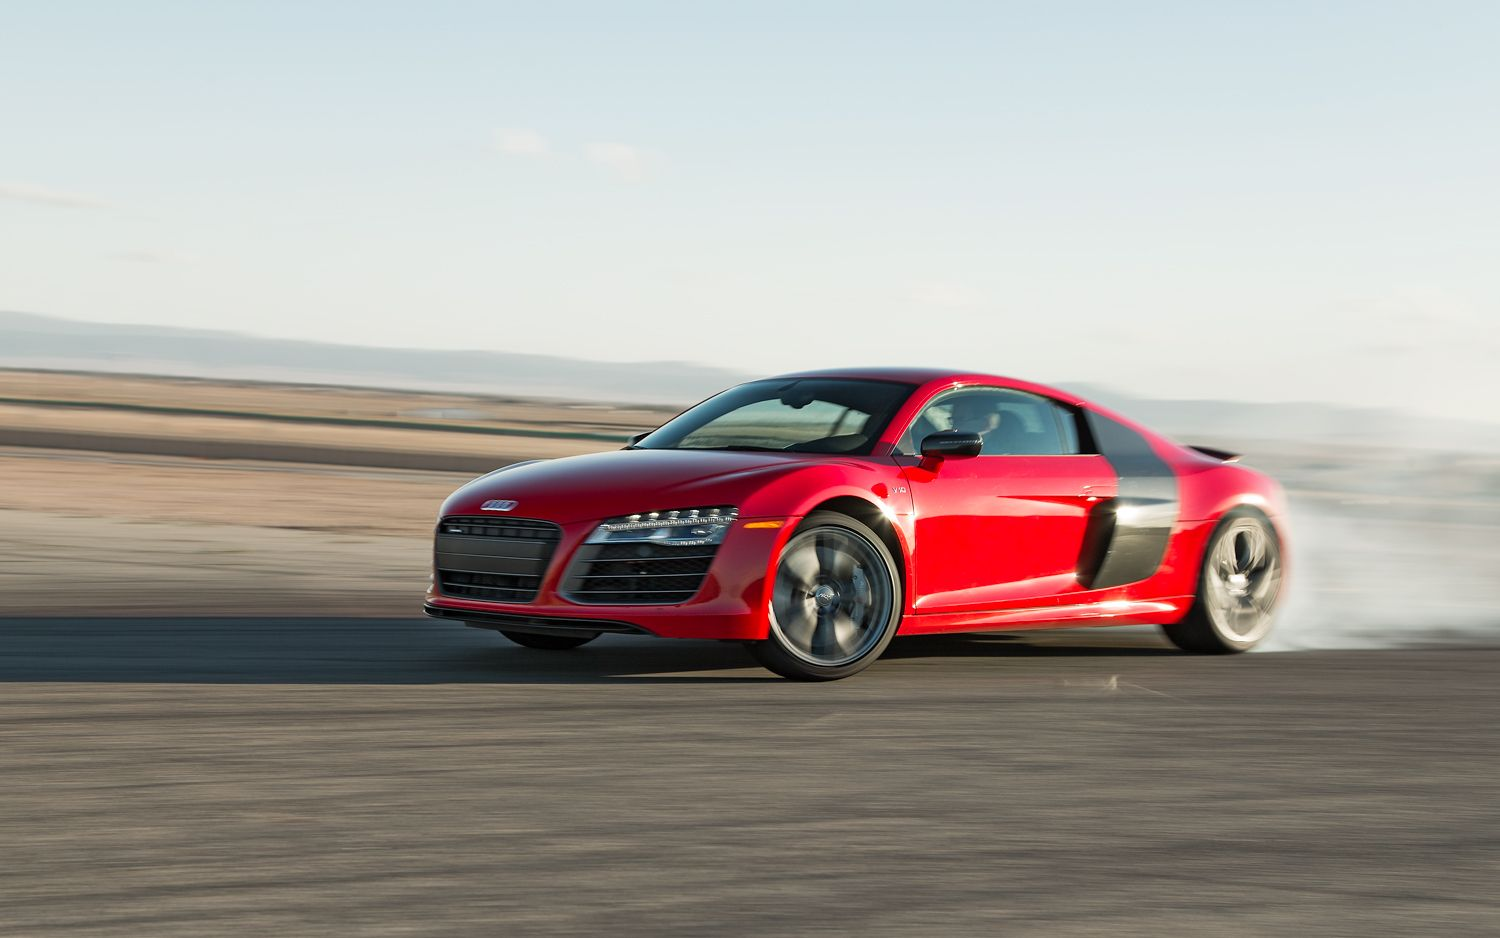 Best 25 audi r8 cost ideas only on pinterest audi r8 2016 audi r8 white and audi r8 review